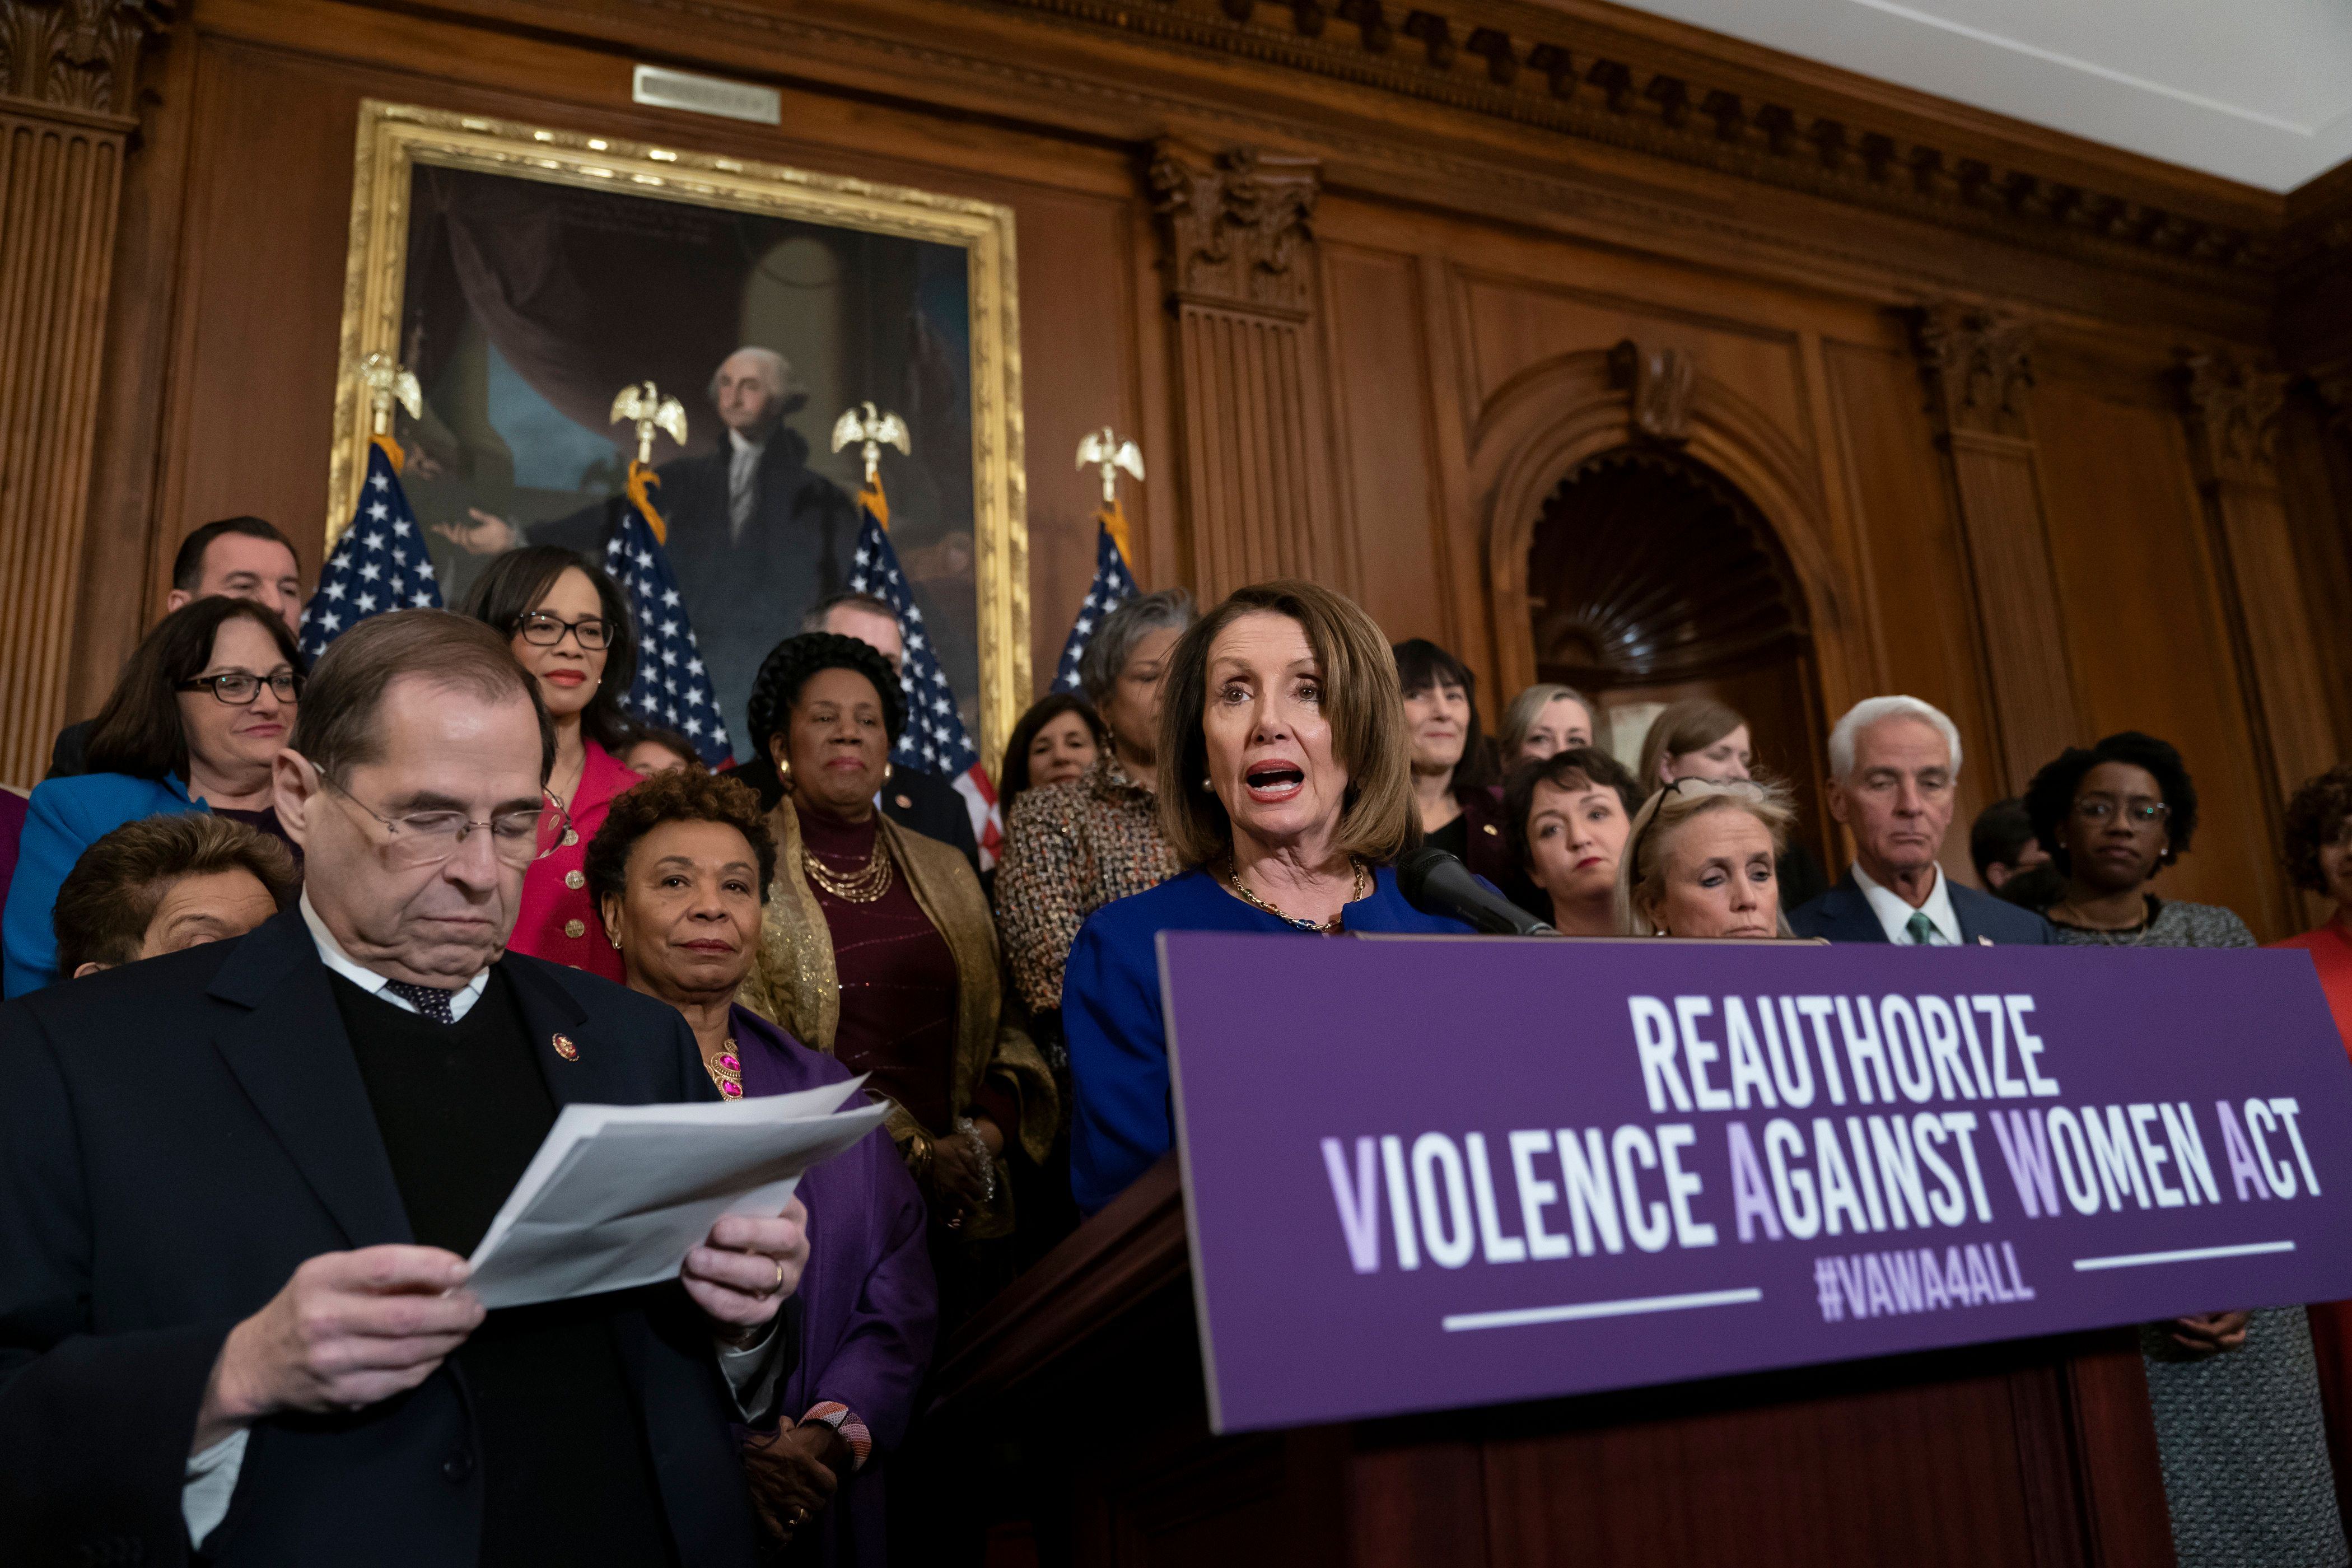 Speaker of the House Nancy Pelosi, D-Calif., joined at left by House Judiciary Committee Chairman Jerrold Nadler, D-N.Y., speaks about plans to reauthorize the Violence Against Women Act which provides funding and grants for a variety of programs that tackle domestic abuse, at the Capitol in Washington, Thursday, March 7, 2019. (AP Photo/J. Scott Applewhite)